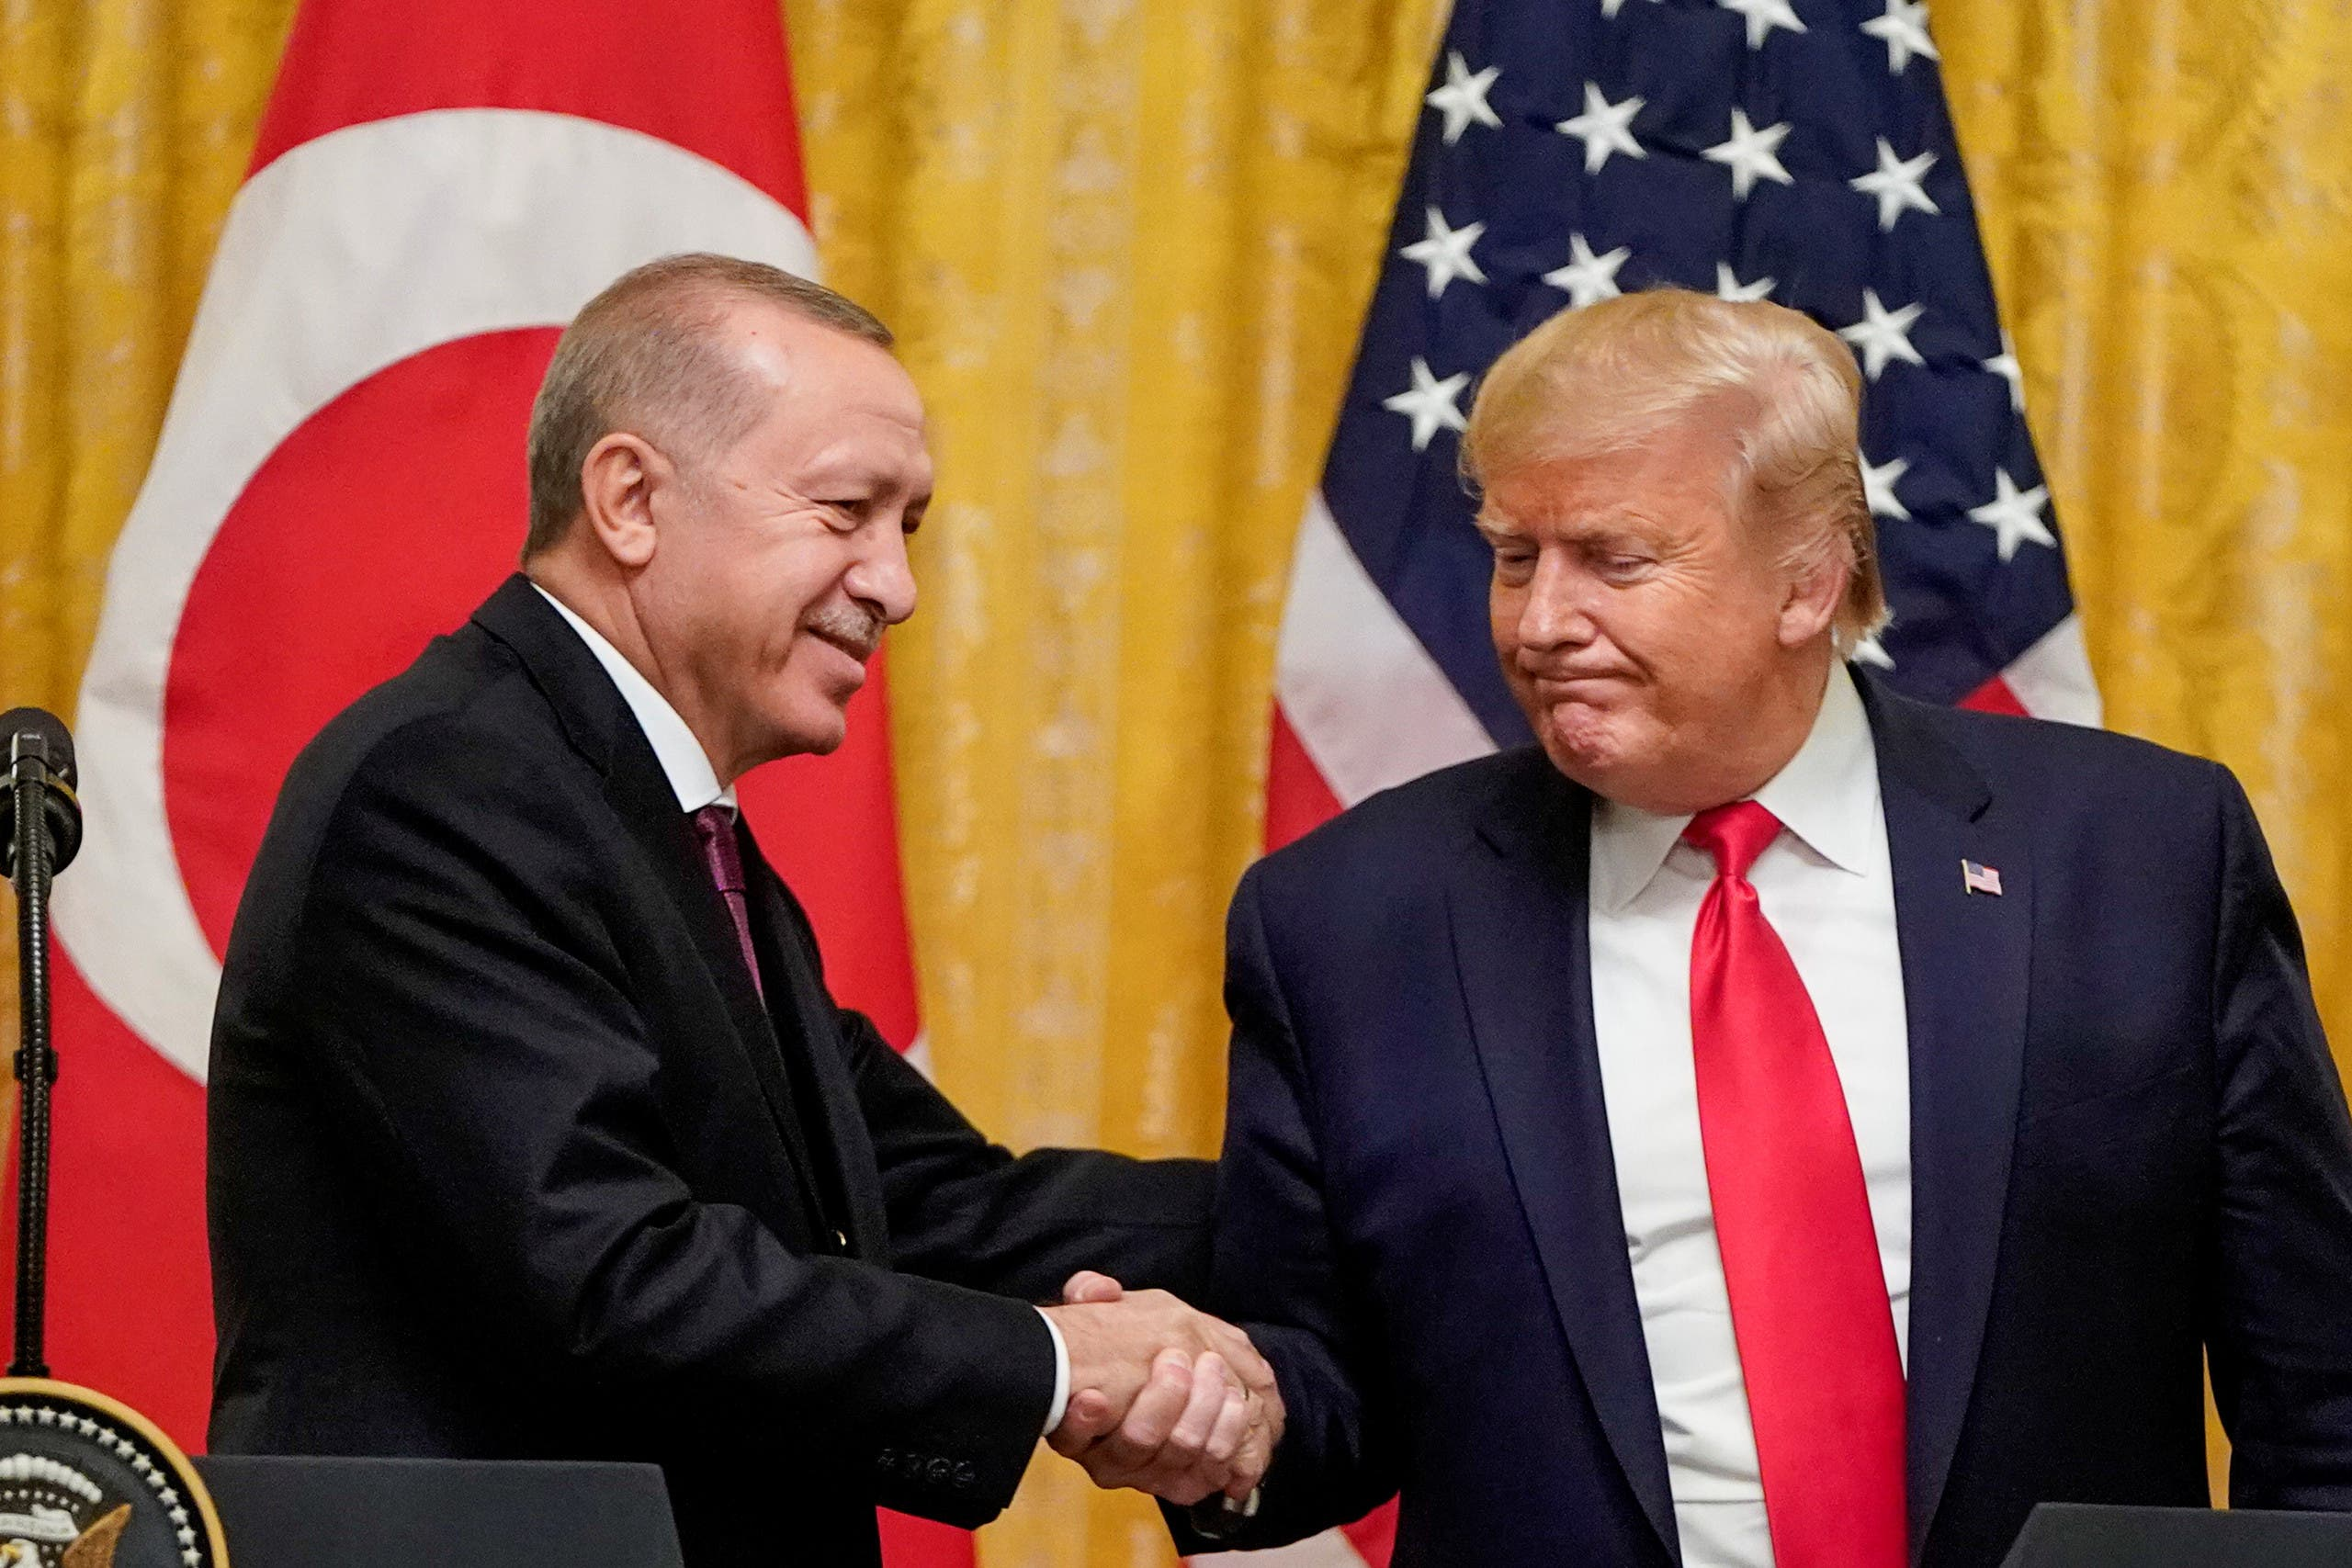 US President Donald Trump greets Turkey's President Recep Tayyip Erdogan during a joint news conference at the White House in Washington, U.S., November 13, 2019. (Reuters)